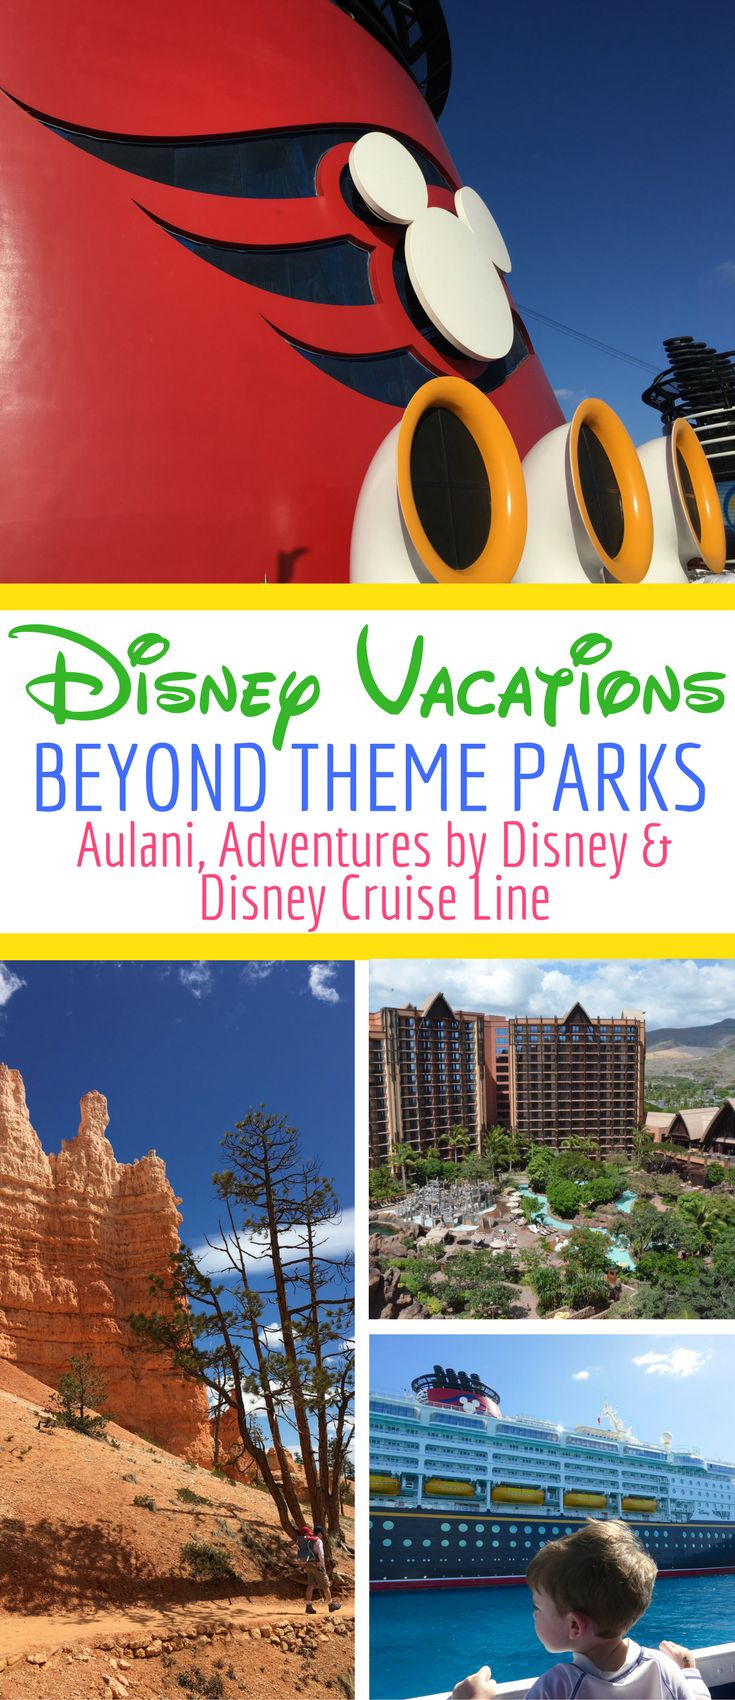 All about Disney vacations beyond the theme parks Tips for planning trips to Aulani in Hawaii a luxury family friendly cruise aboard Disney Cruise Line